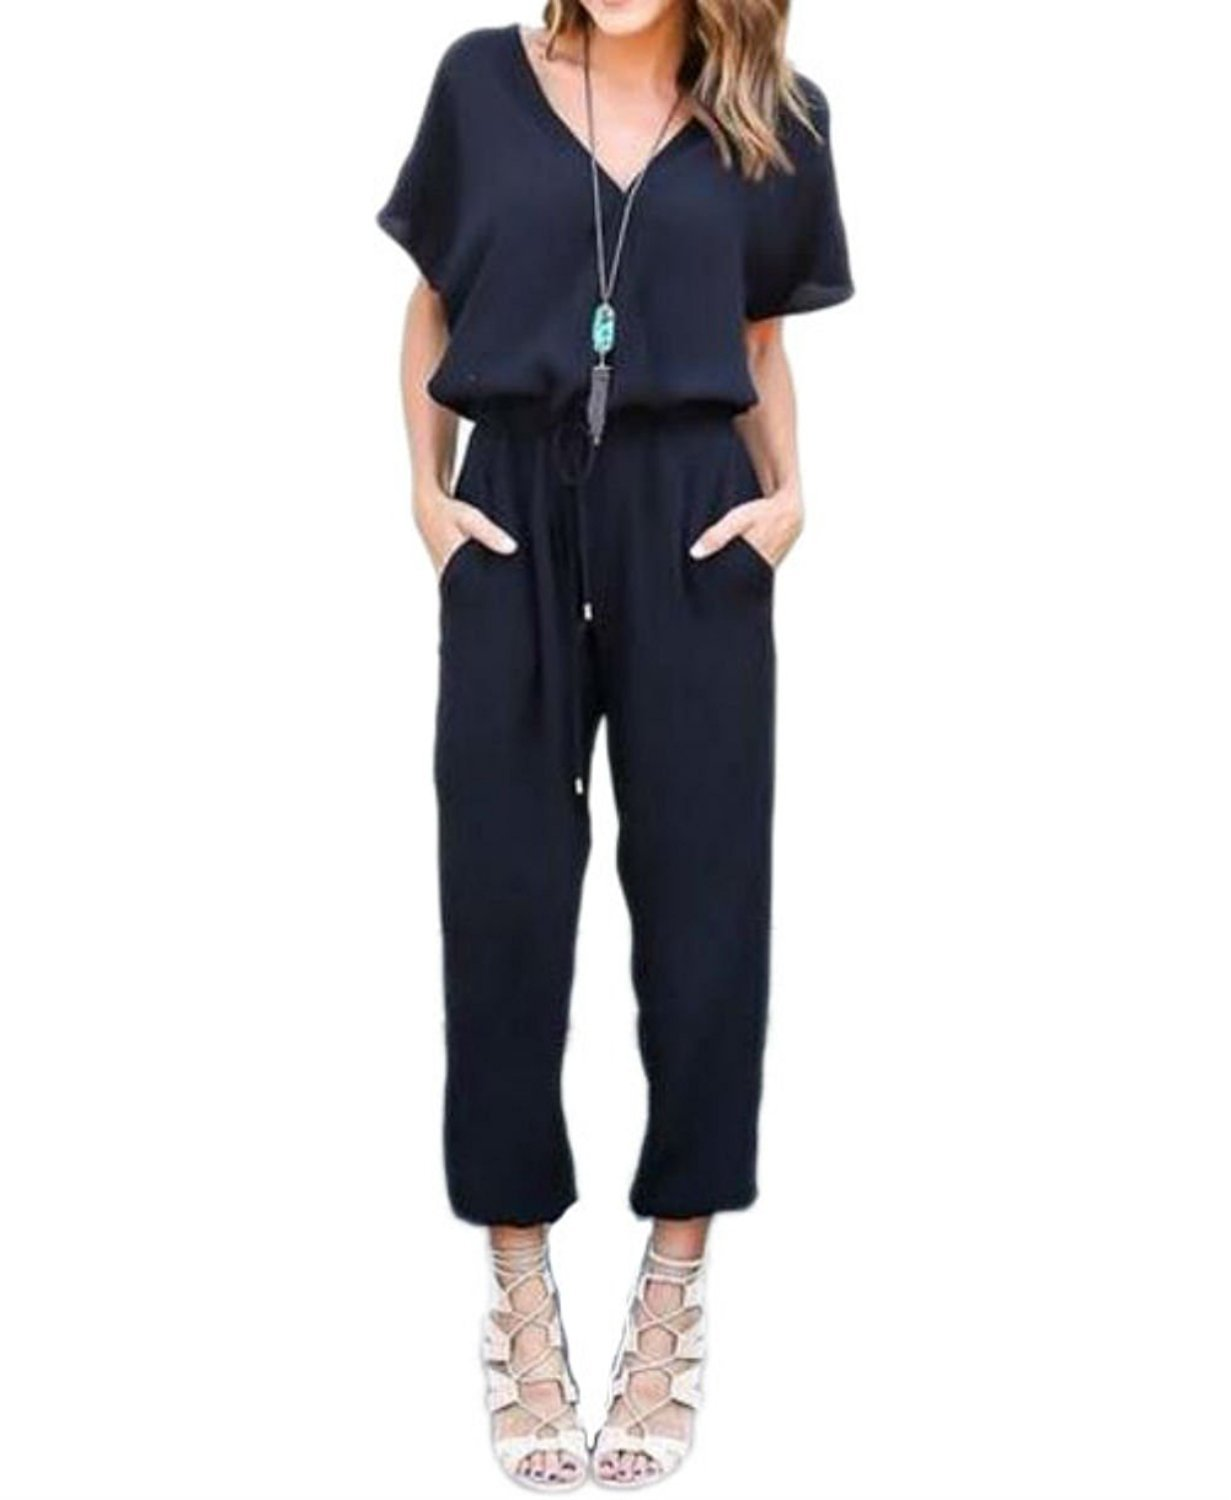 Cinyifaan Women's V Neck Casual Loose Long Jumpsuits Romper Playsuit with Belt,Small,Black